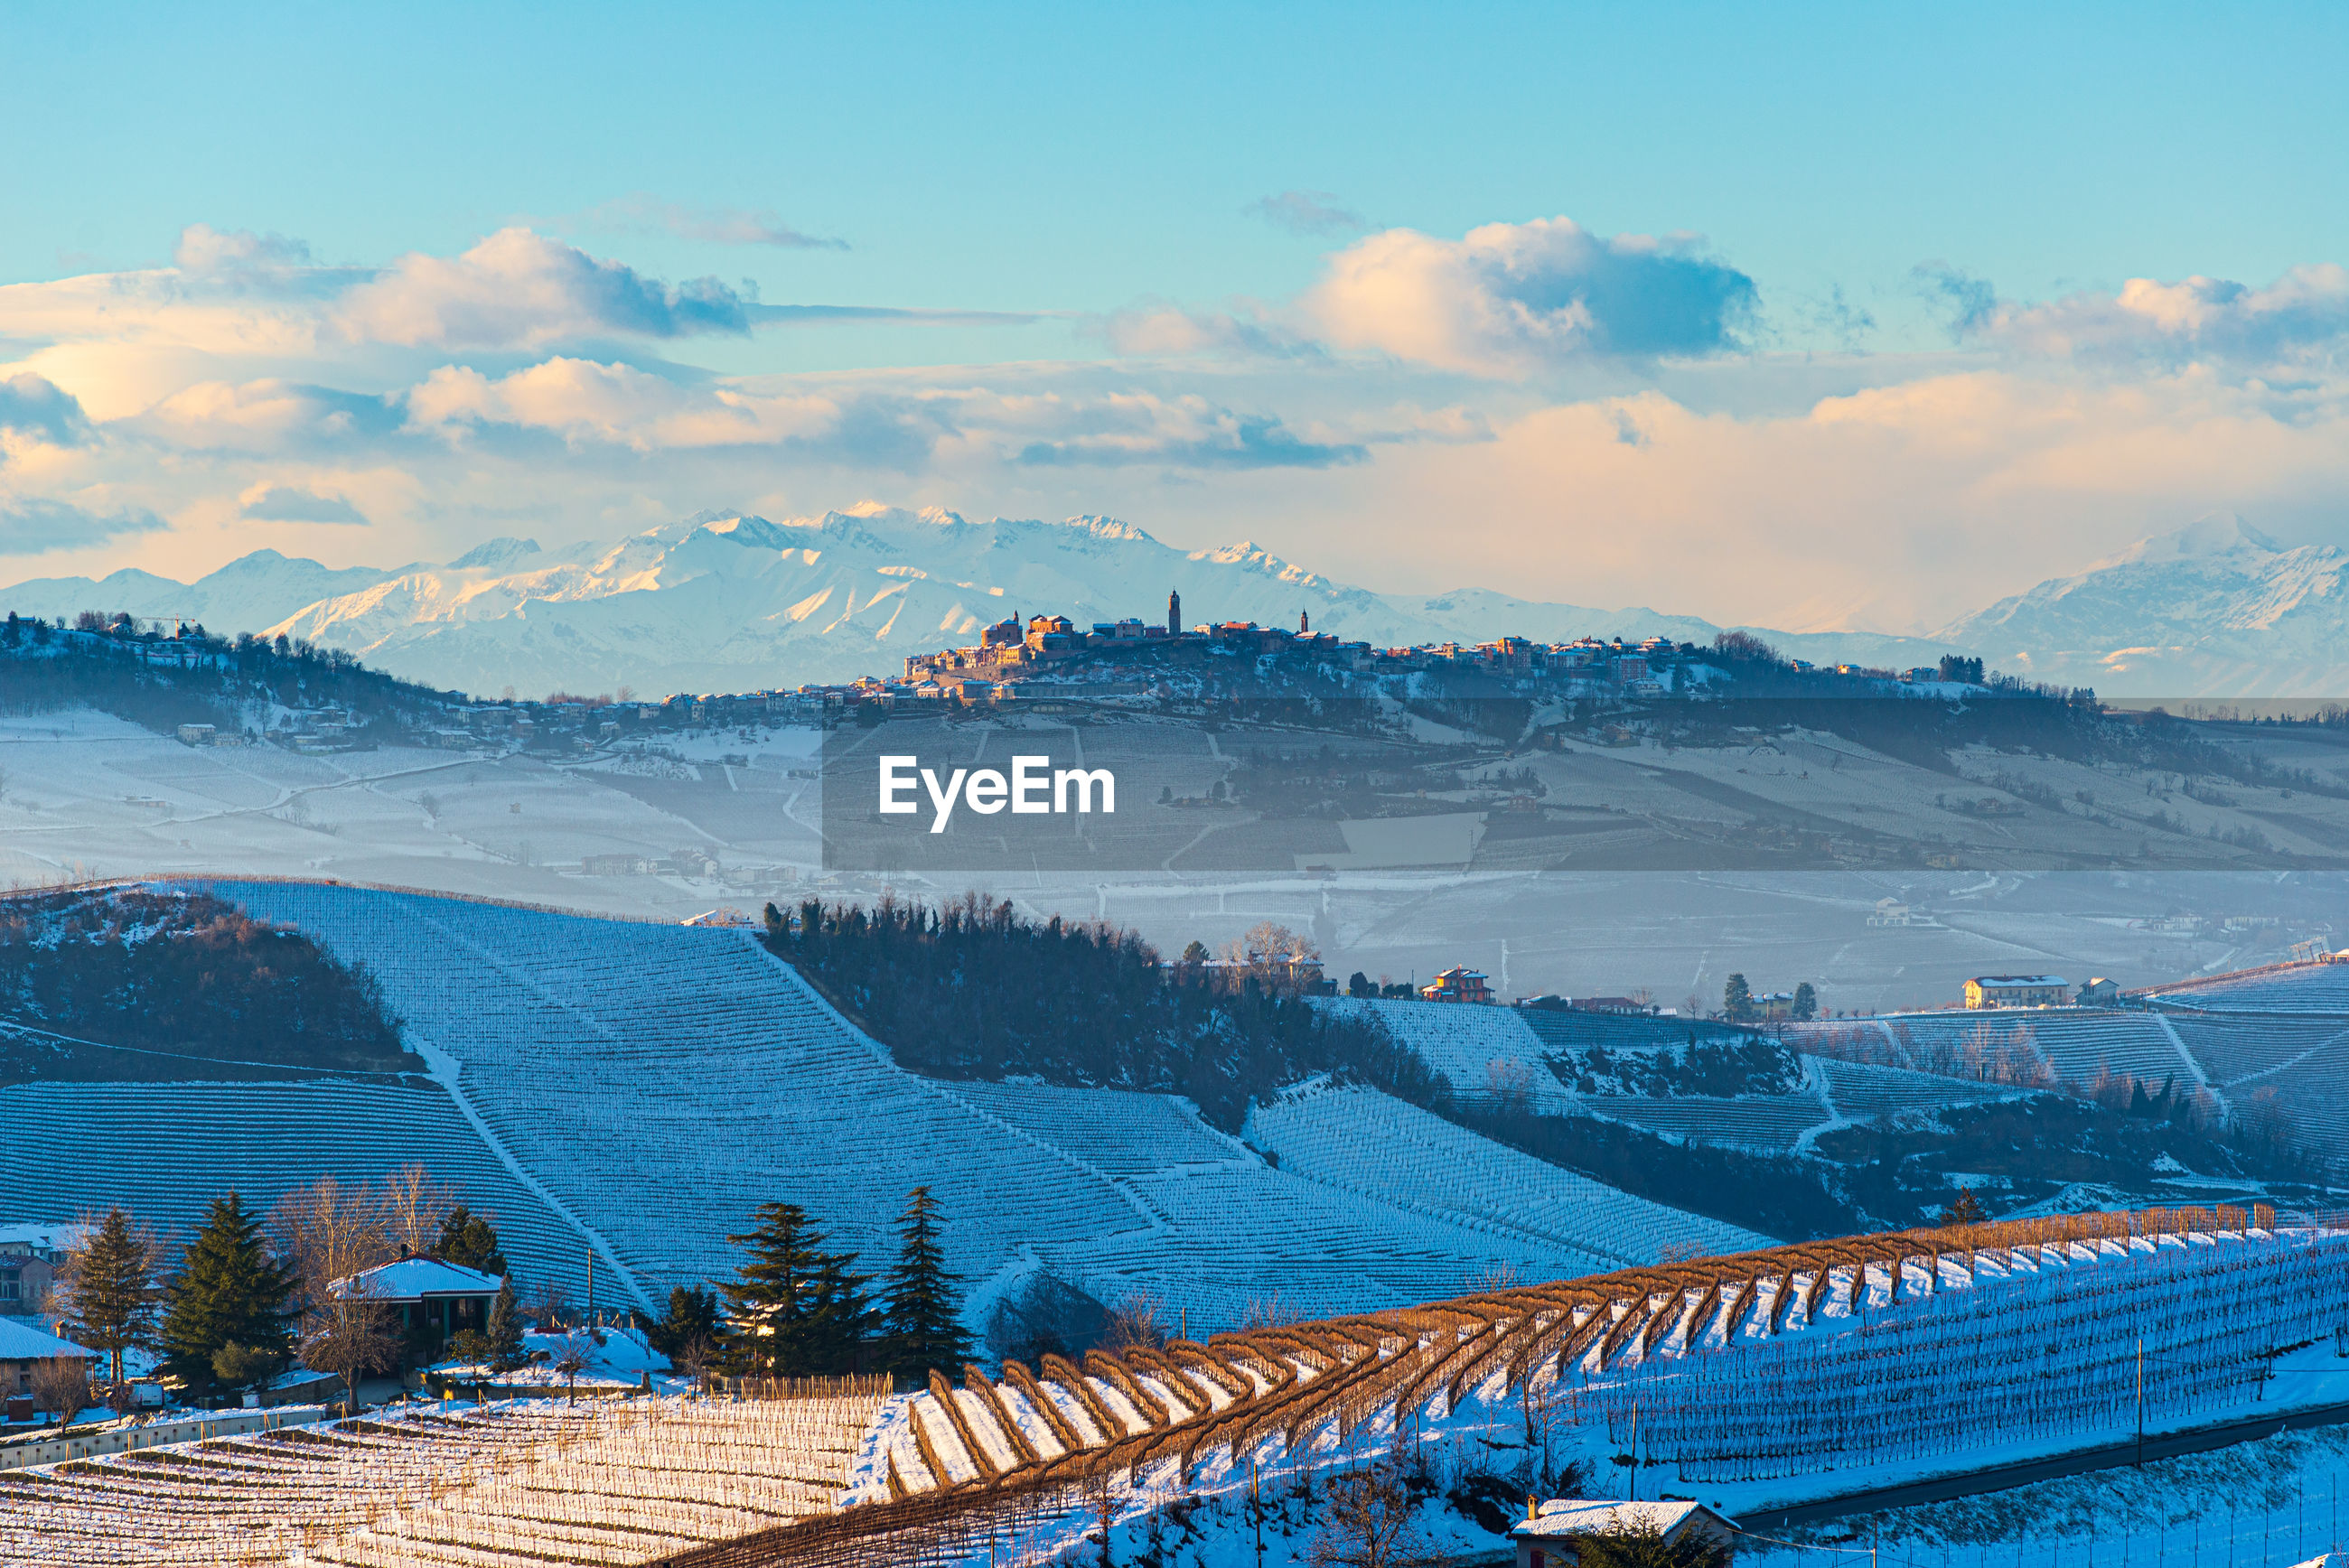 HIGH ANGLE VIEW OF SNOWCAPPED MOUNTAIN AGAINST SKY DURING WINTER